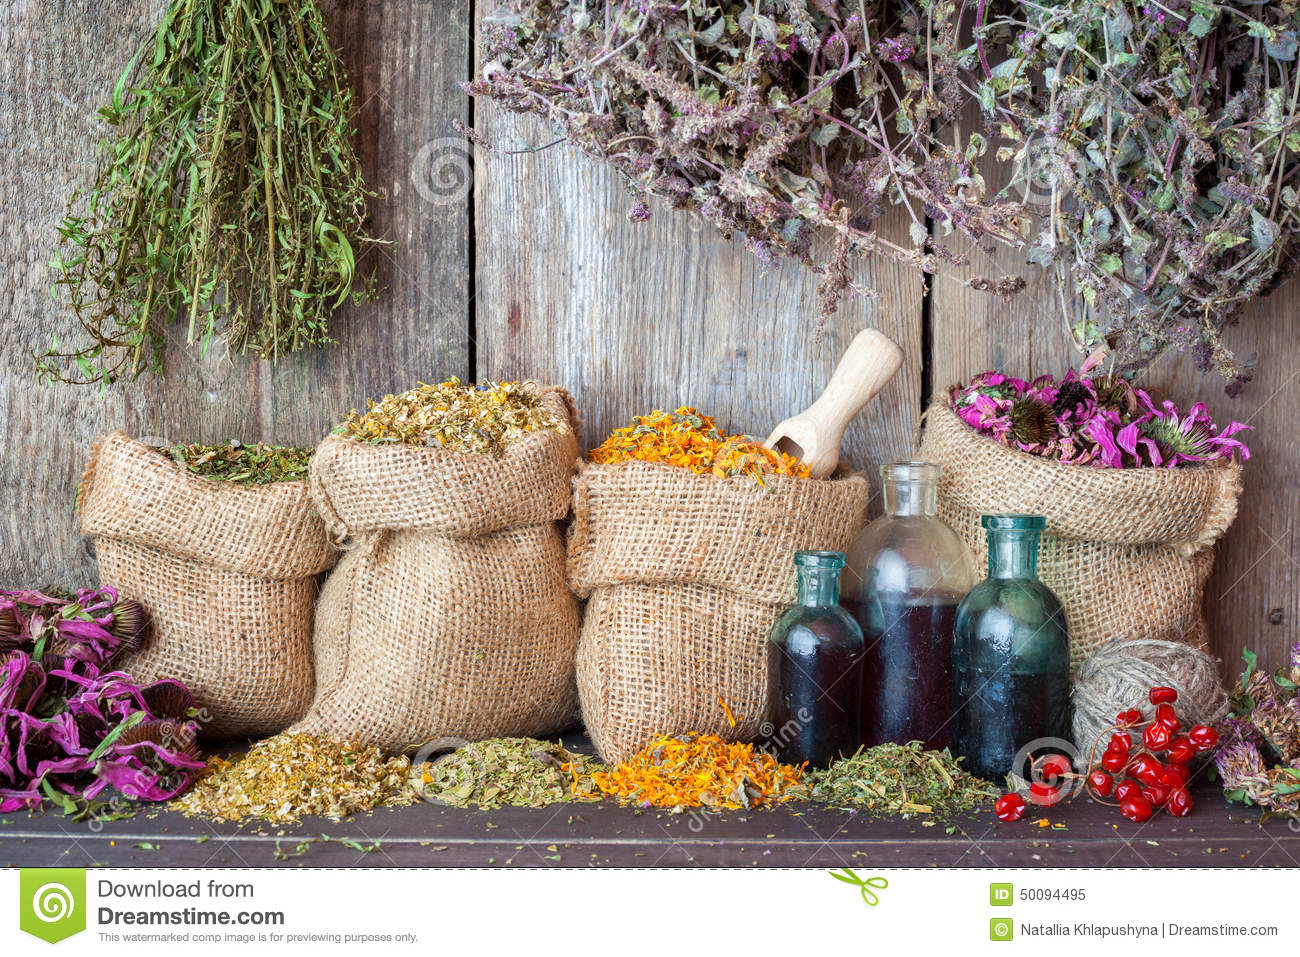 Healing herbs in hessian bags and bottles of essential oil